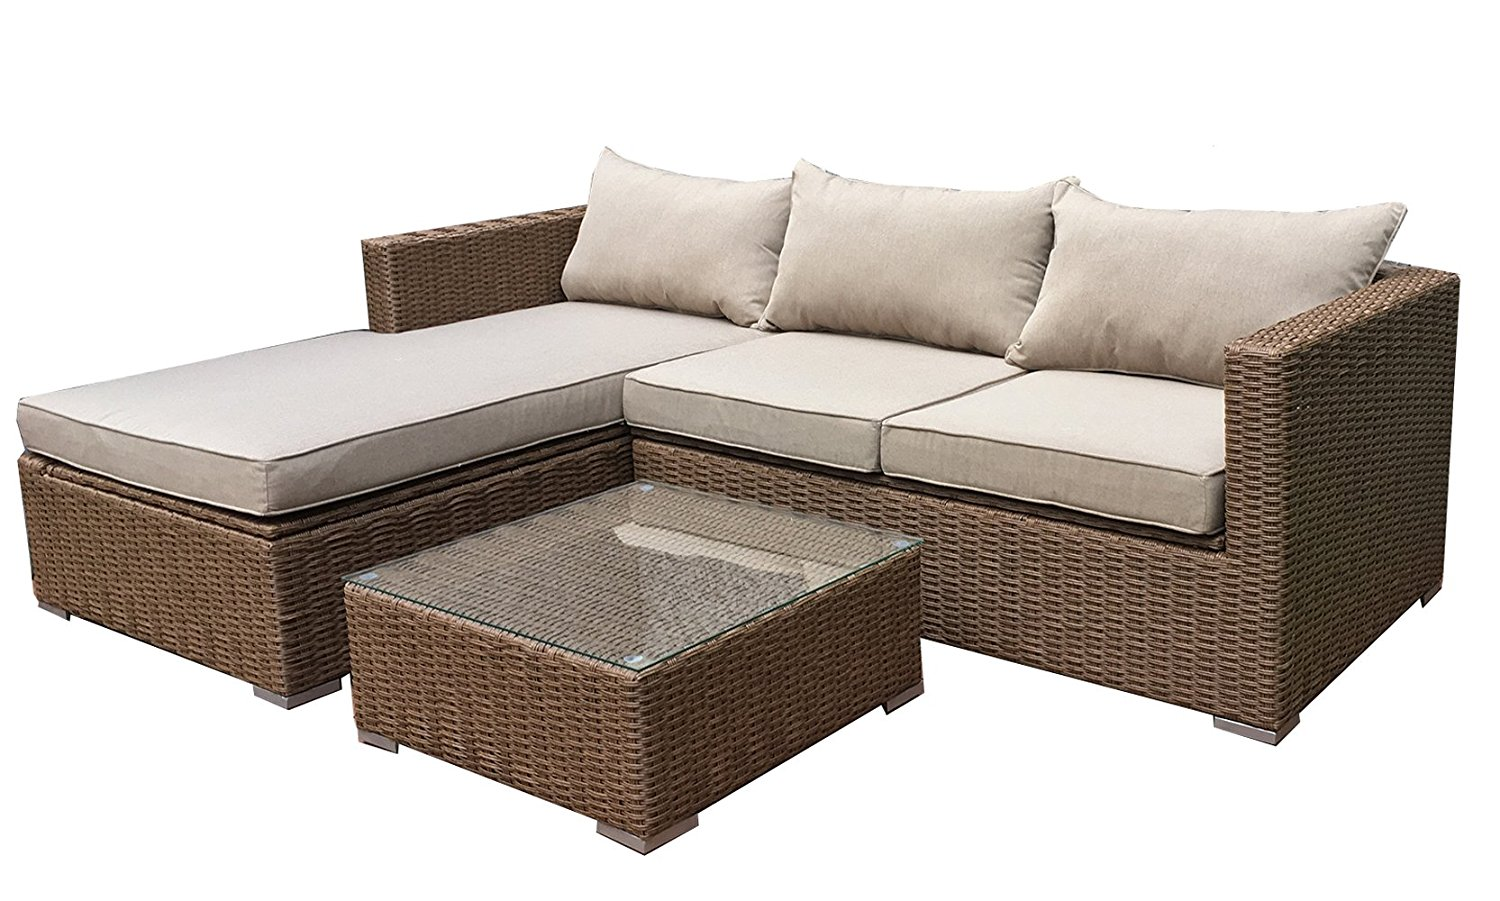 deep sectional sofa patioflare emmett seating sofa sectional set with 30958